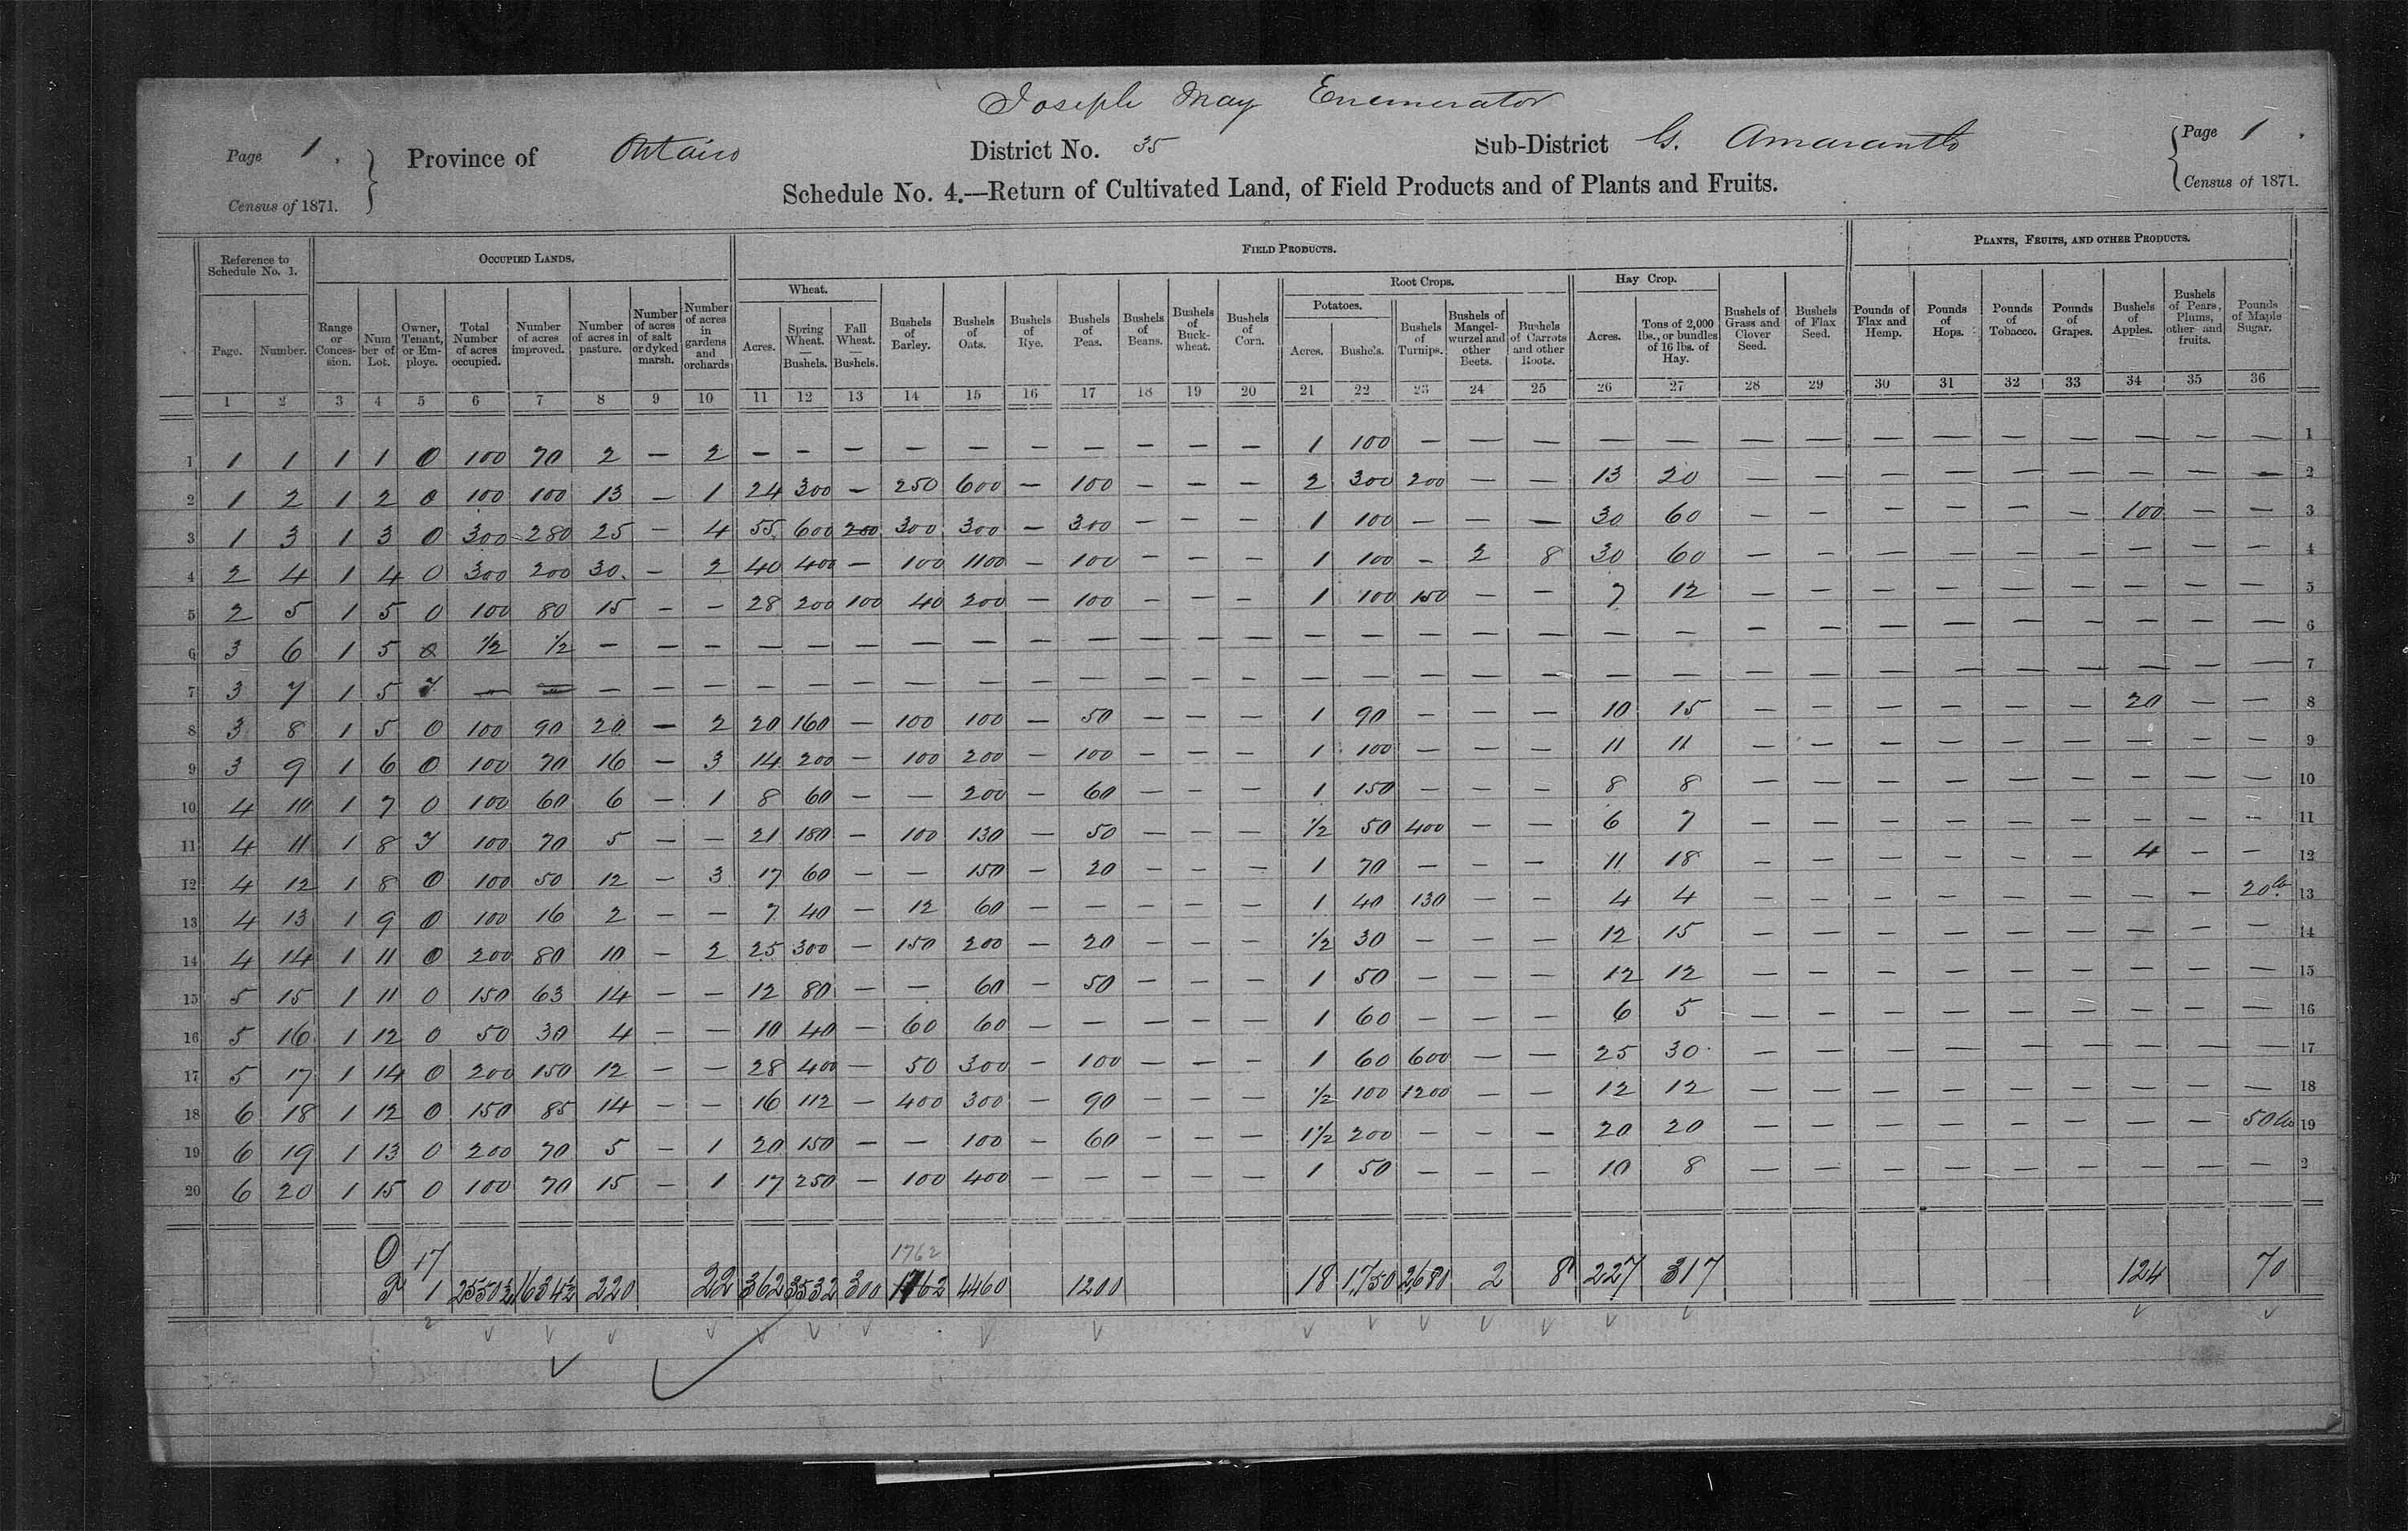 Title: Census of Canada, 1871 - Mikan Number: 142105 - Microform: c-9950